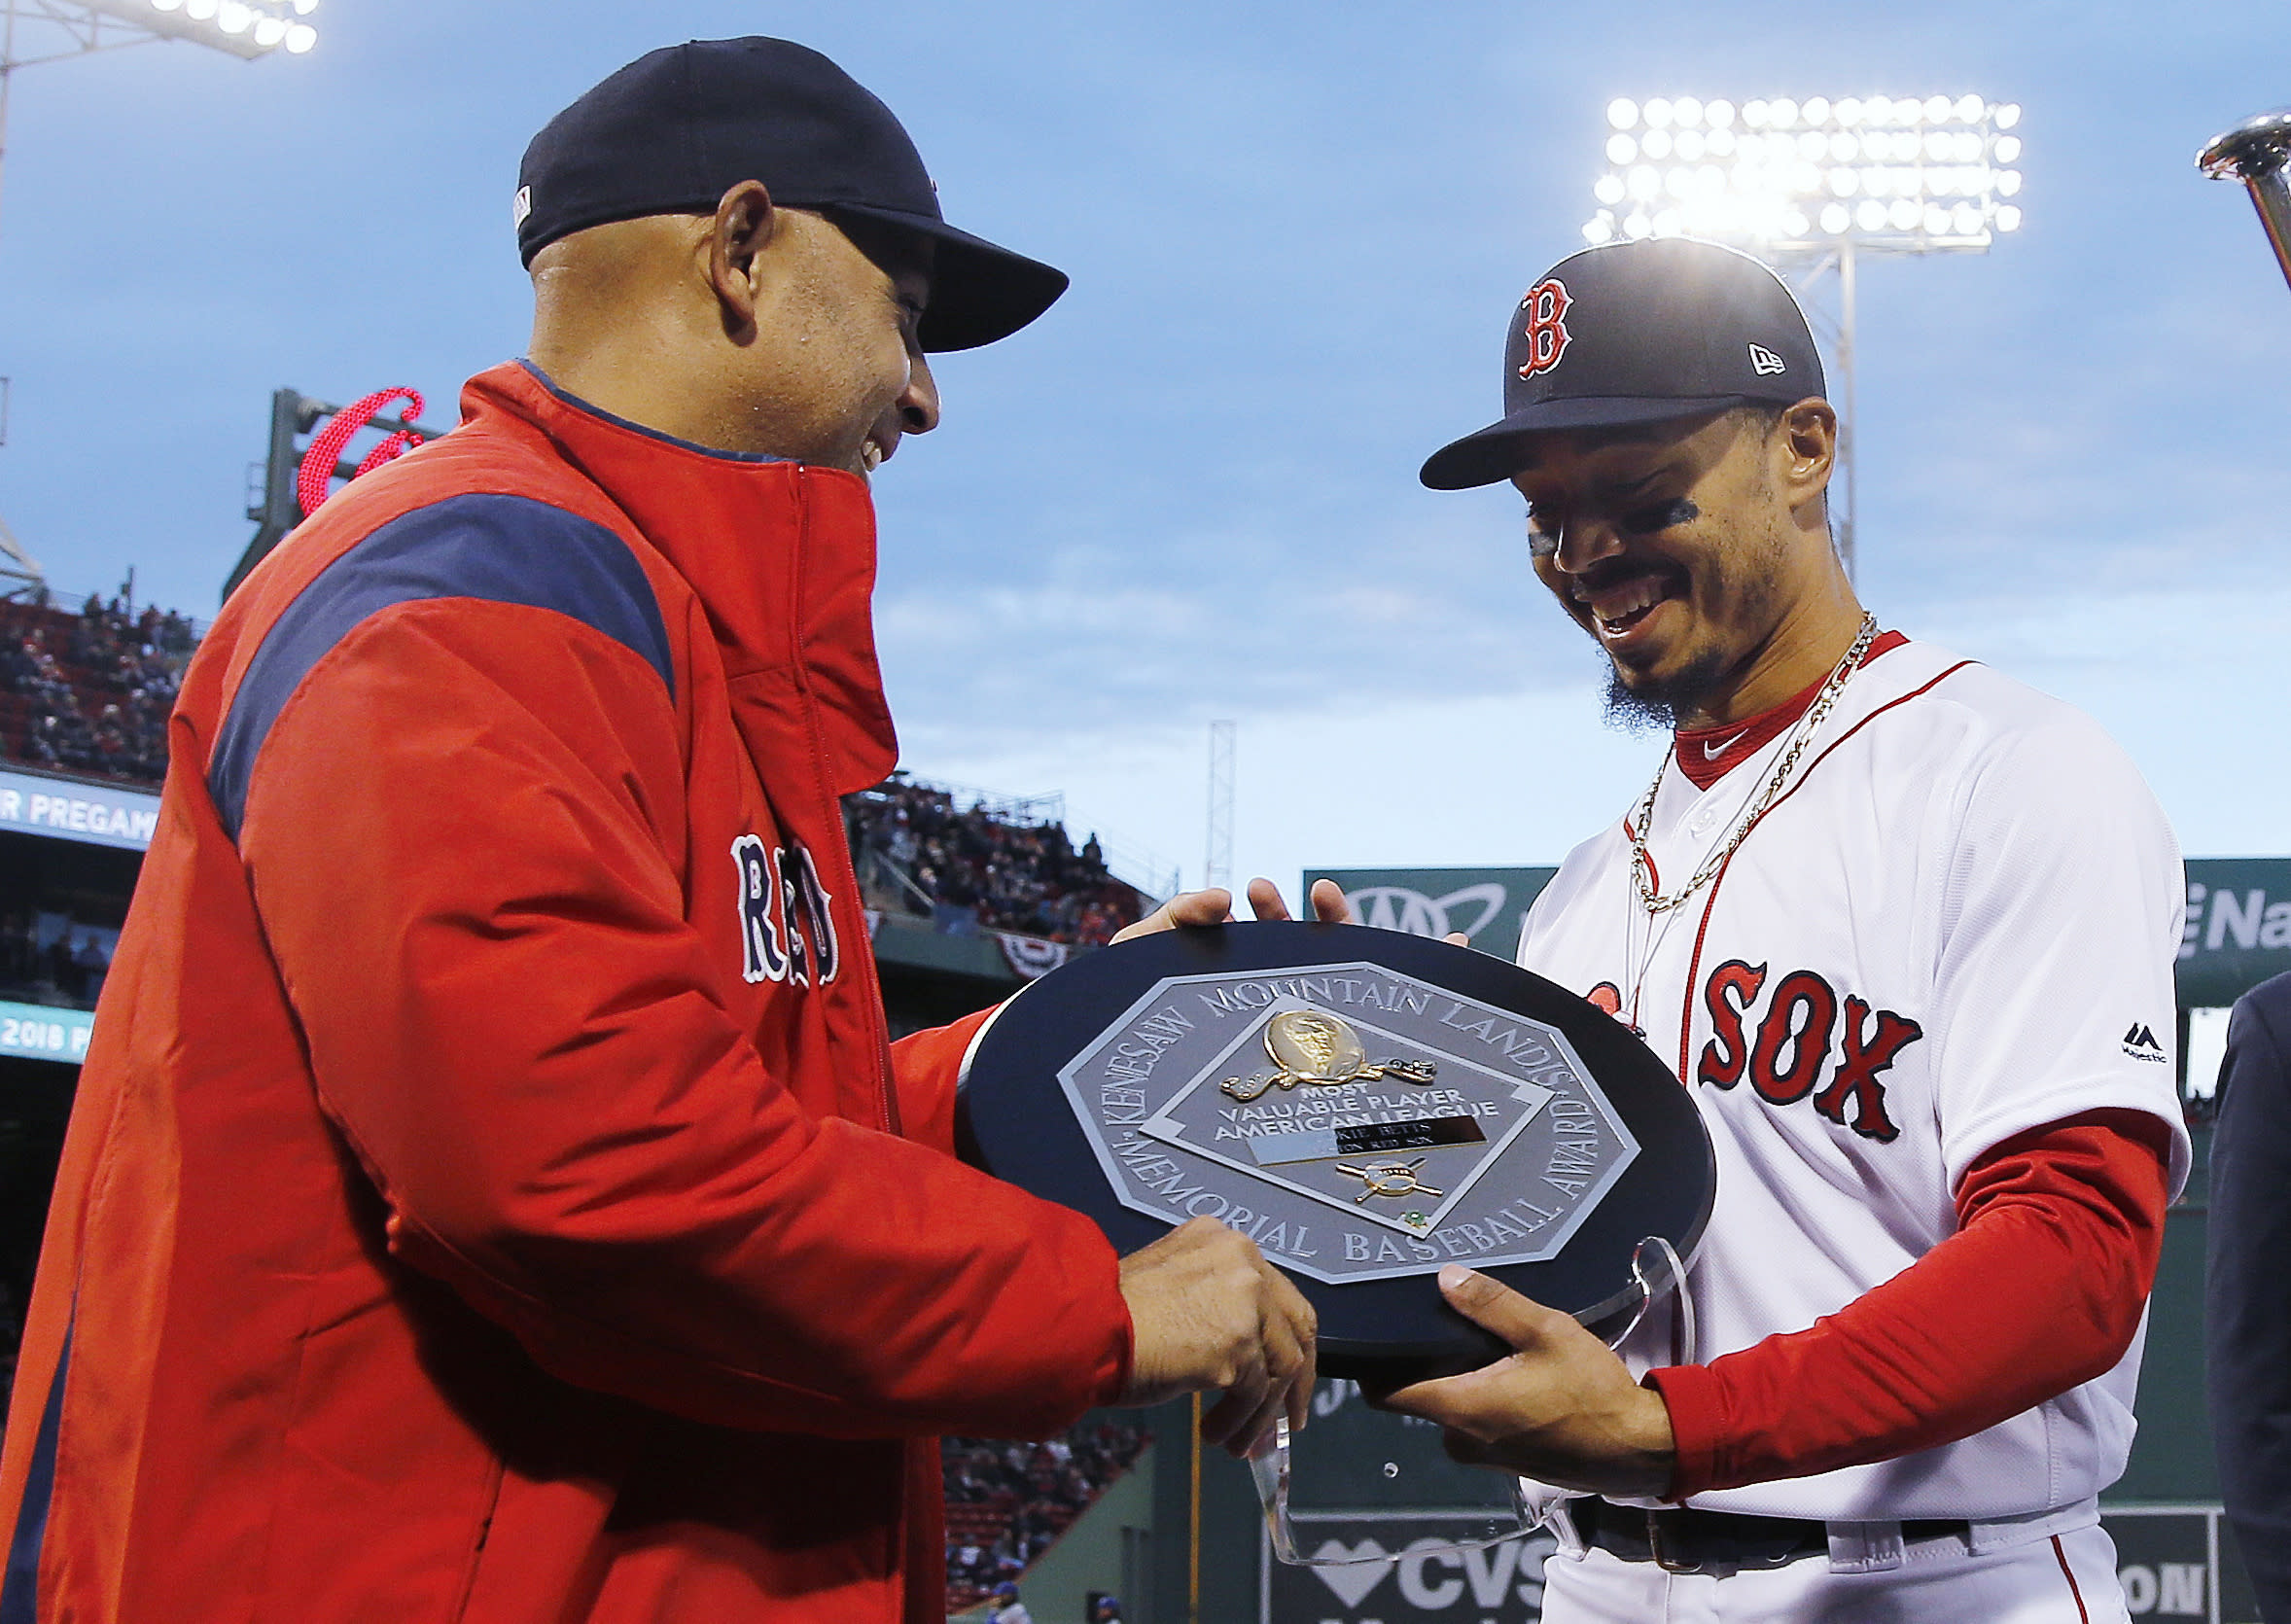 FILE - In this April 11, 2019, file photo, Boston Red Sox manager Alex Cora, left, presents right fielder Mookie Betts with the 2018 AL MVP Award before a baseball game between the Red Sox and the Toronto Blue Jays at Fenway Park in Boston. The award includes the name and image of Kenesaw Mountain Landis. The name of Landis, the former baseball commissioner who never had a Black player in the majors during his long reign, is being pulled off all future MVP plaques after more than 75 years. Landis won't be depicted on the annual awards presented by the Baseball Writers' Association of the America, the group said Friday, Oct. 2, 2020. (AP Photo/Winslow Townson, File)